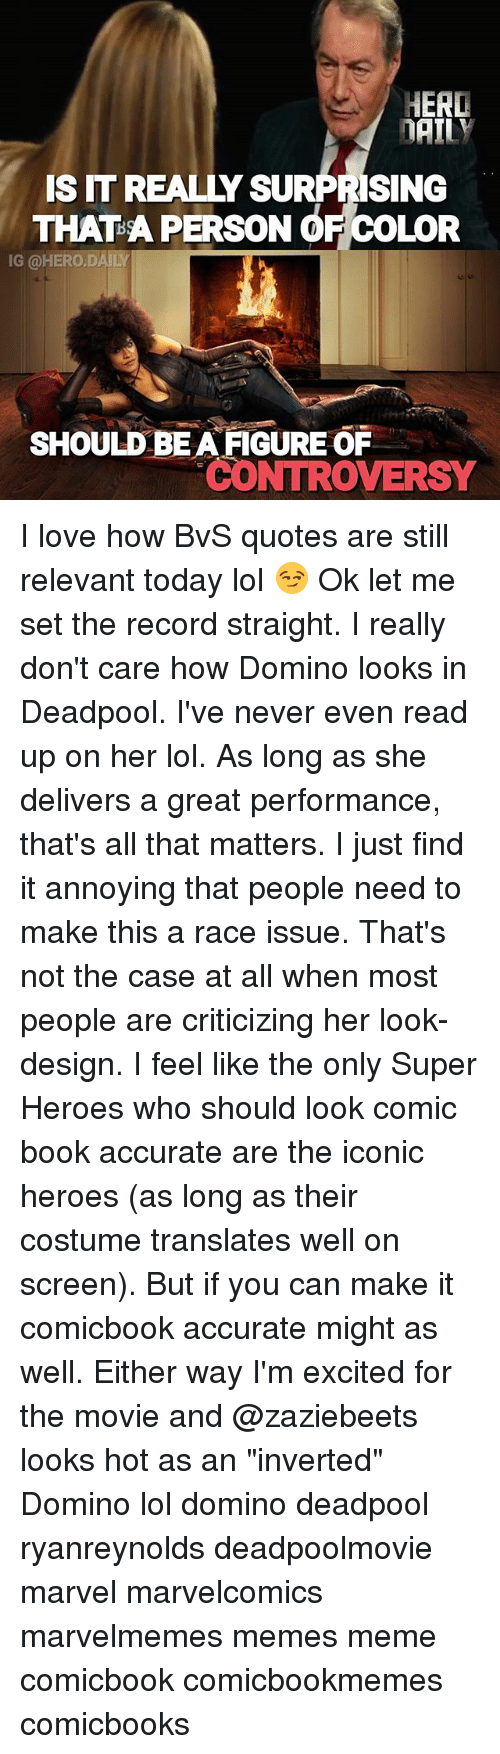 "Personalize: HERD  DAILY  SIT REALLY SURPRISING  THAT A PERSON OF COLOR  IG @HERO.DAILY  SHOULD BEA FIGURE OR  CONTROVERSY I love how BvS quotes are still relevant today lol 😏 Ok let me set the record straight. I really don't care how Domino looks in Deadpool. I've never even read up on her lol. As long as she delivers a great performance, that's all that matters. I just find it annoying that people need to make this a race issue. That's not the case at all when most people are criticizing her look-design. I feel like the only Super Heroes who should look comic book accurate are the iconic heroes (as long as their costume translates well on screen). But if you can make it comicbook accurate might as well. Either way I'm excited for the movie and @zaziebeets looks hot as an ""inverted"" Domino lol domino deadpool ryanreynolds deadpoolmovie marvel marvelcomics marvelmemes memes meme comicbook comicbookmemes comicbooks"